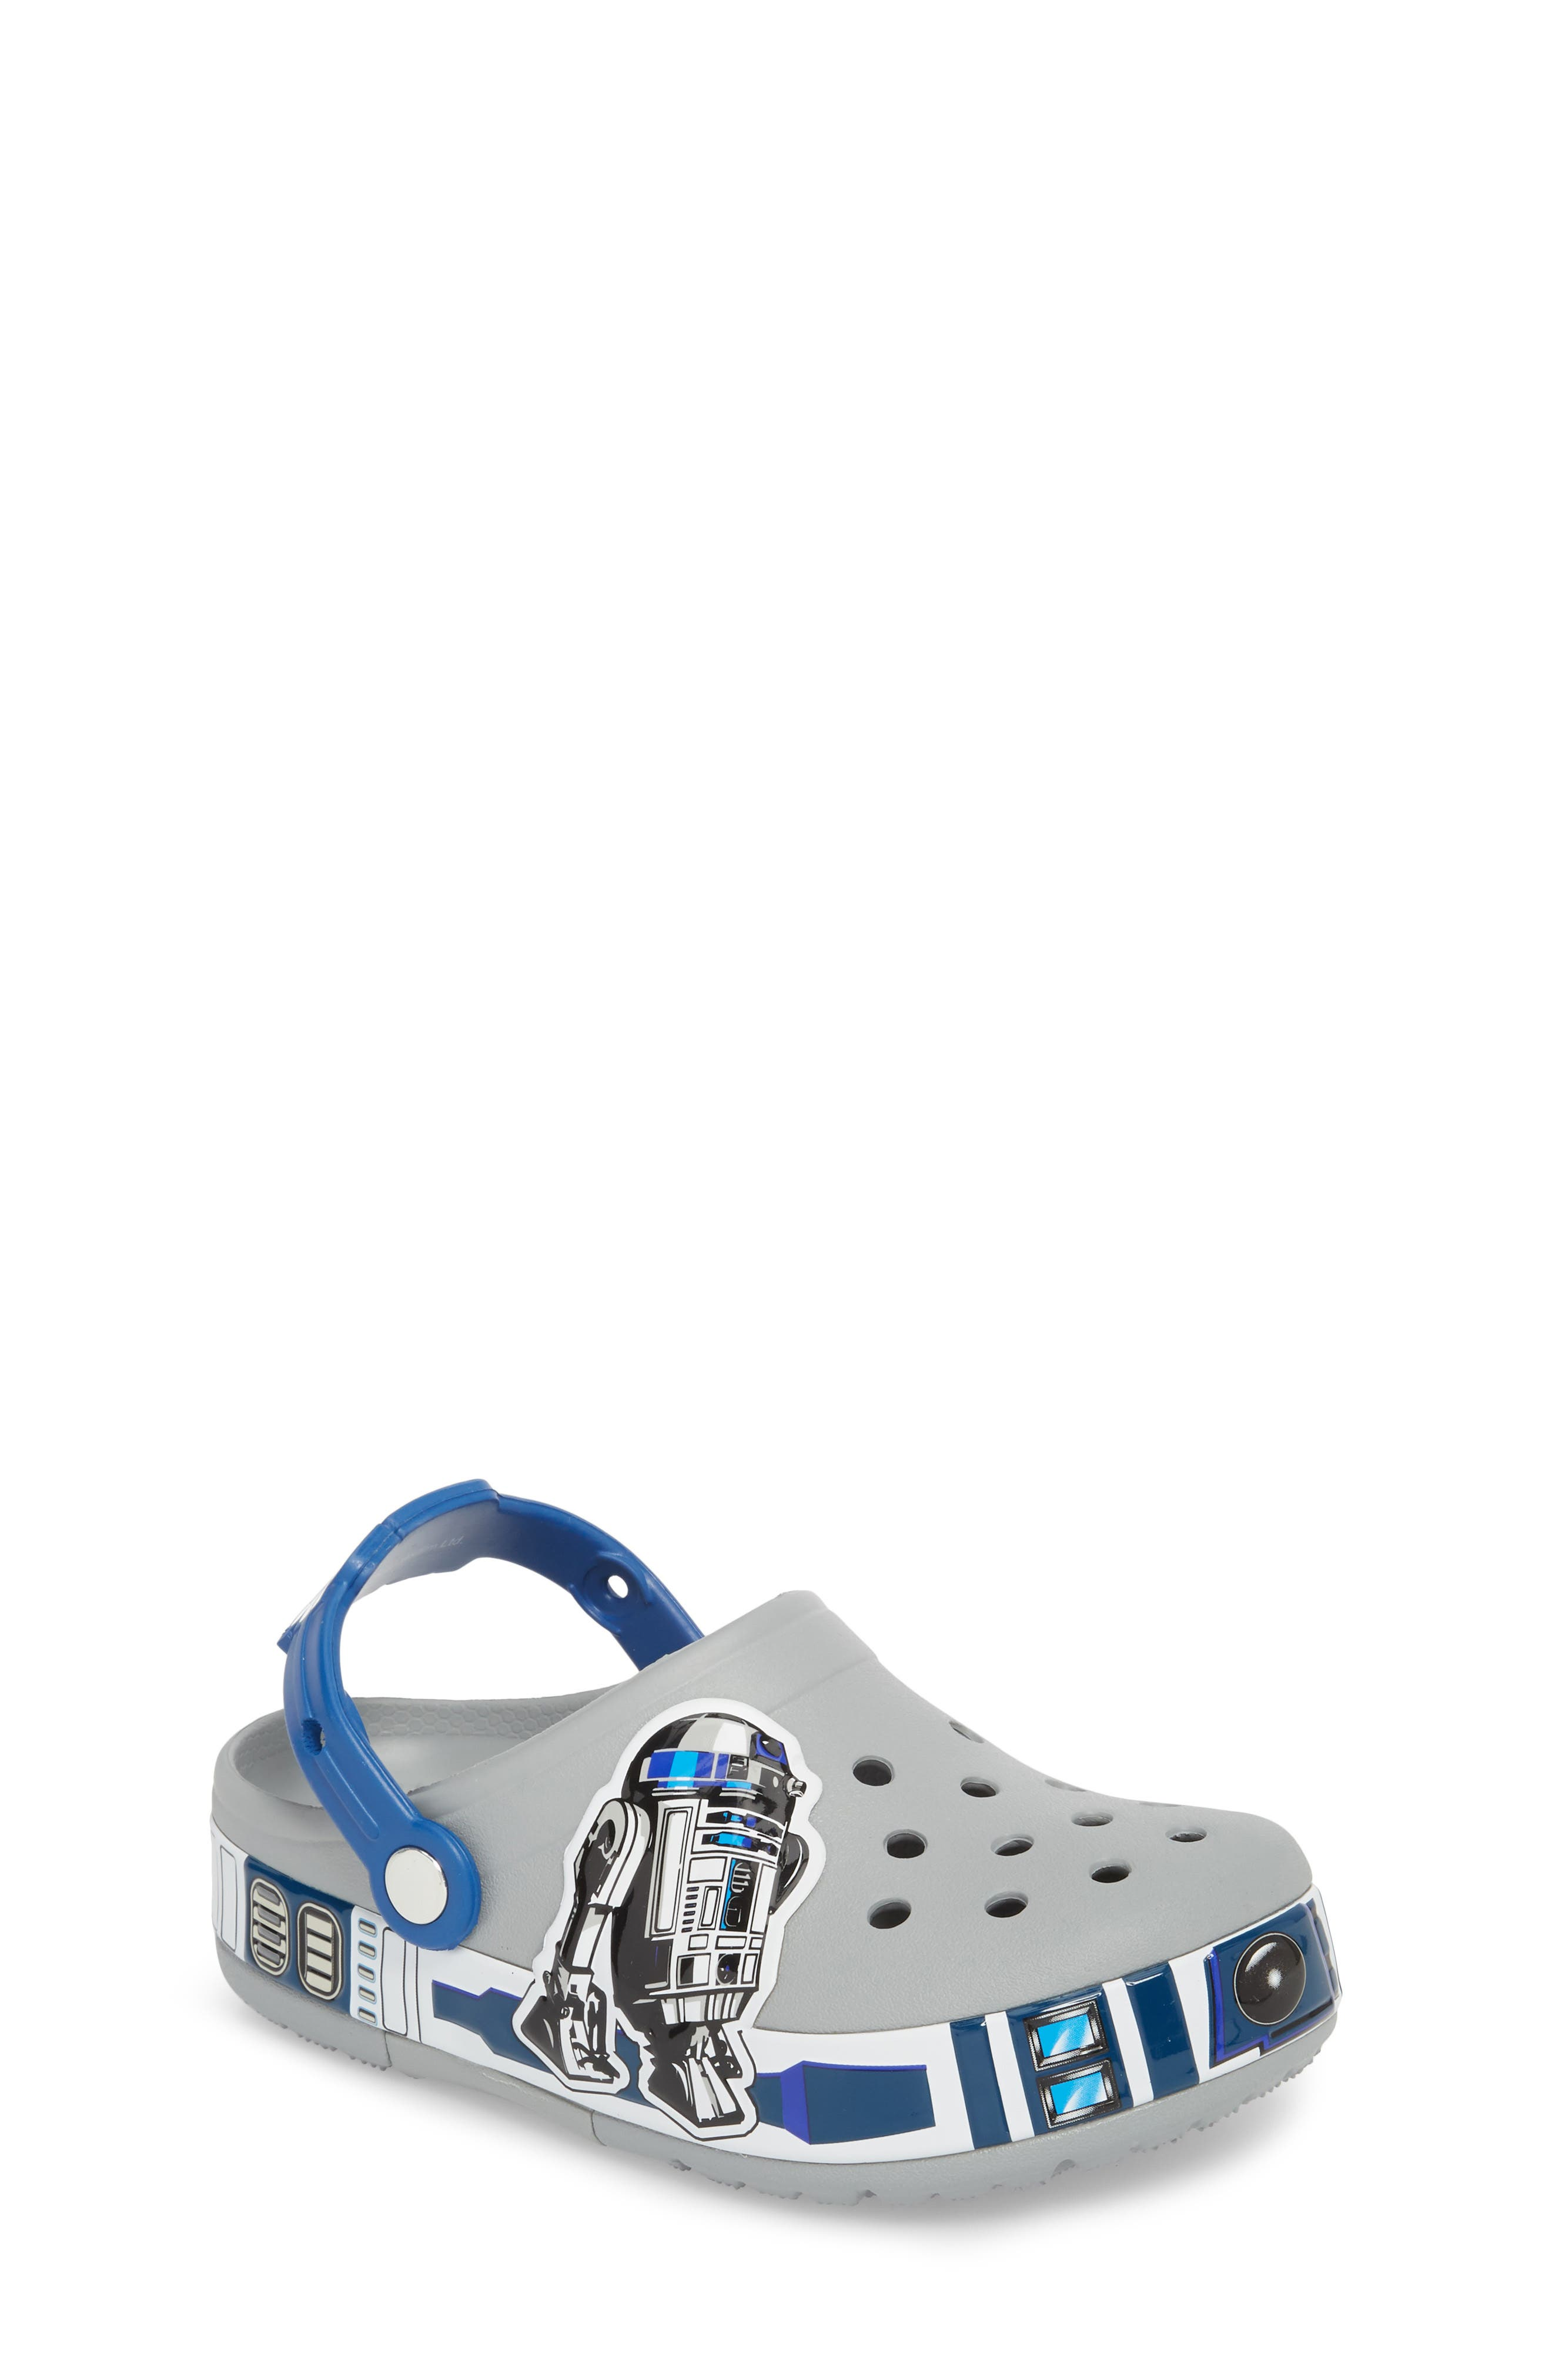 Fun Lab Light-Up Star Wars<sup>®</sup> R2D2<sup>®</sup> Slip-On,                             Main thumbnail 1, color,                             025